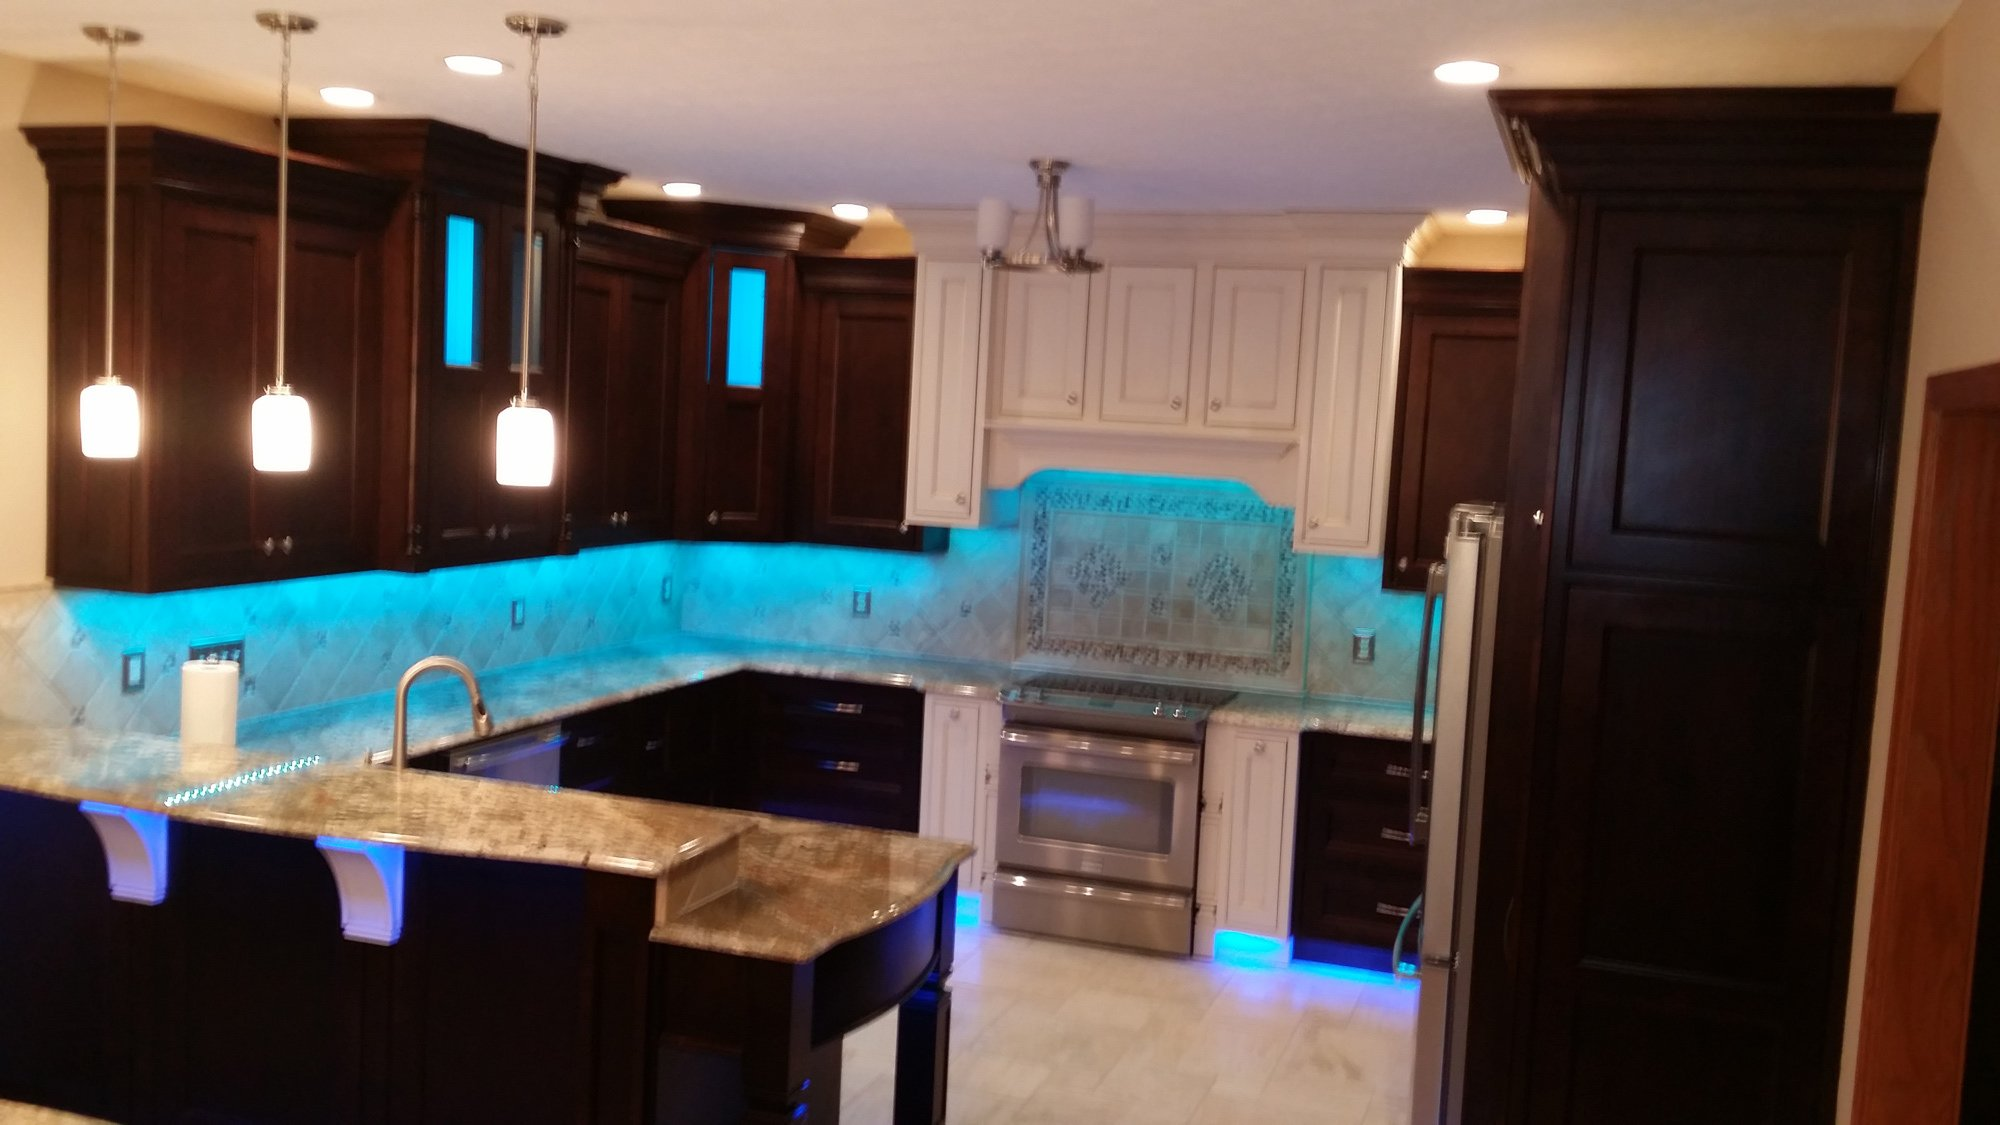 Kitchen Remodeling Before And After Gallery Miami Valley Oh Full Spectrum Construction